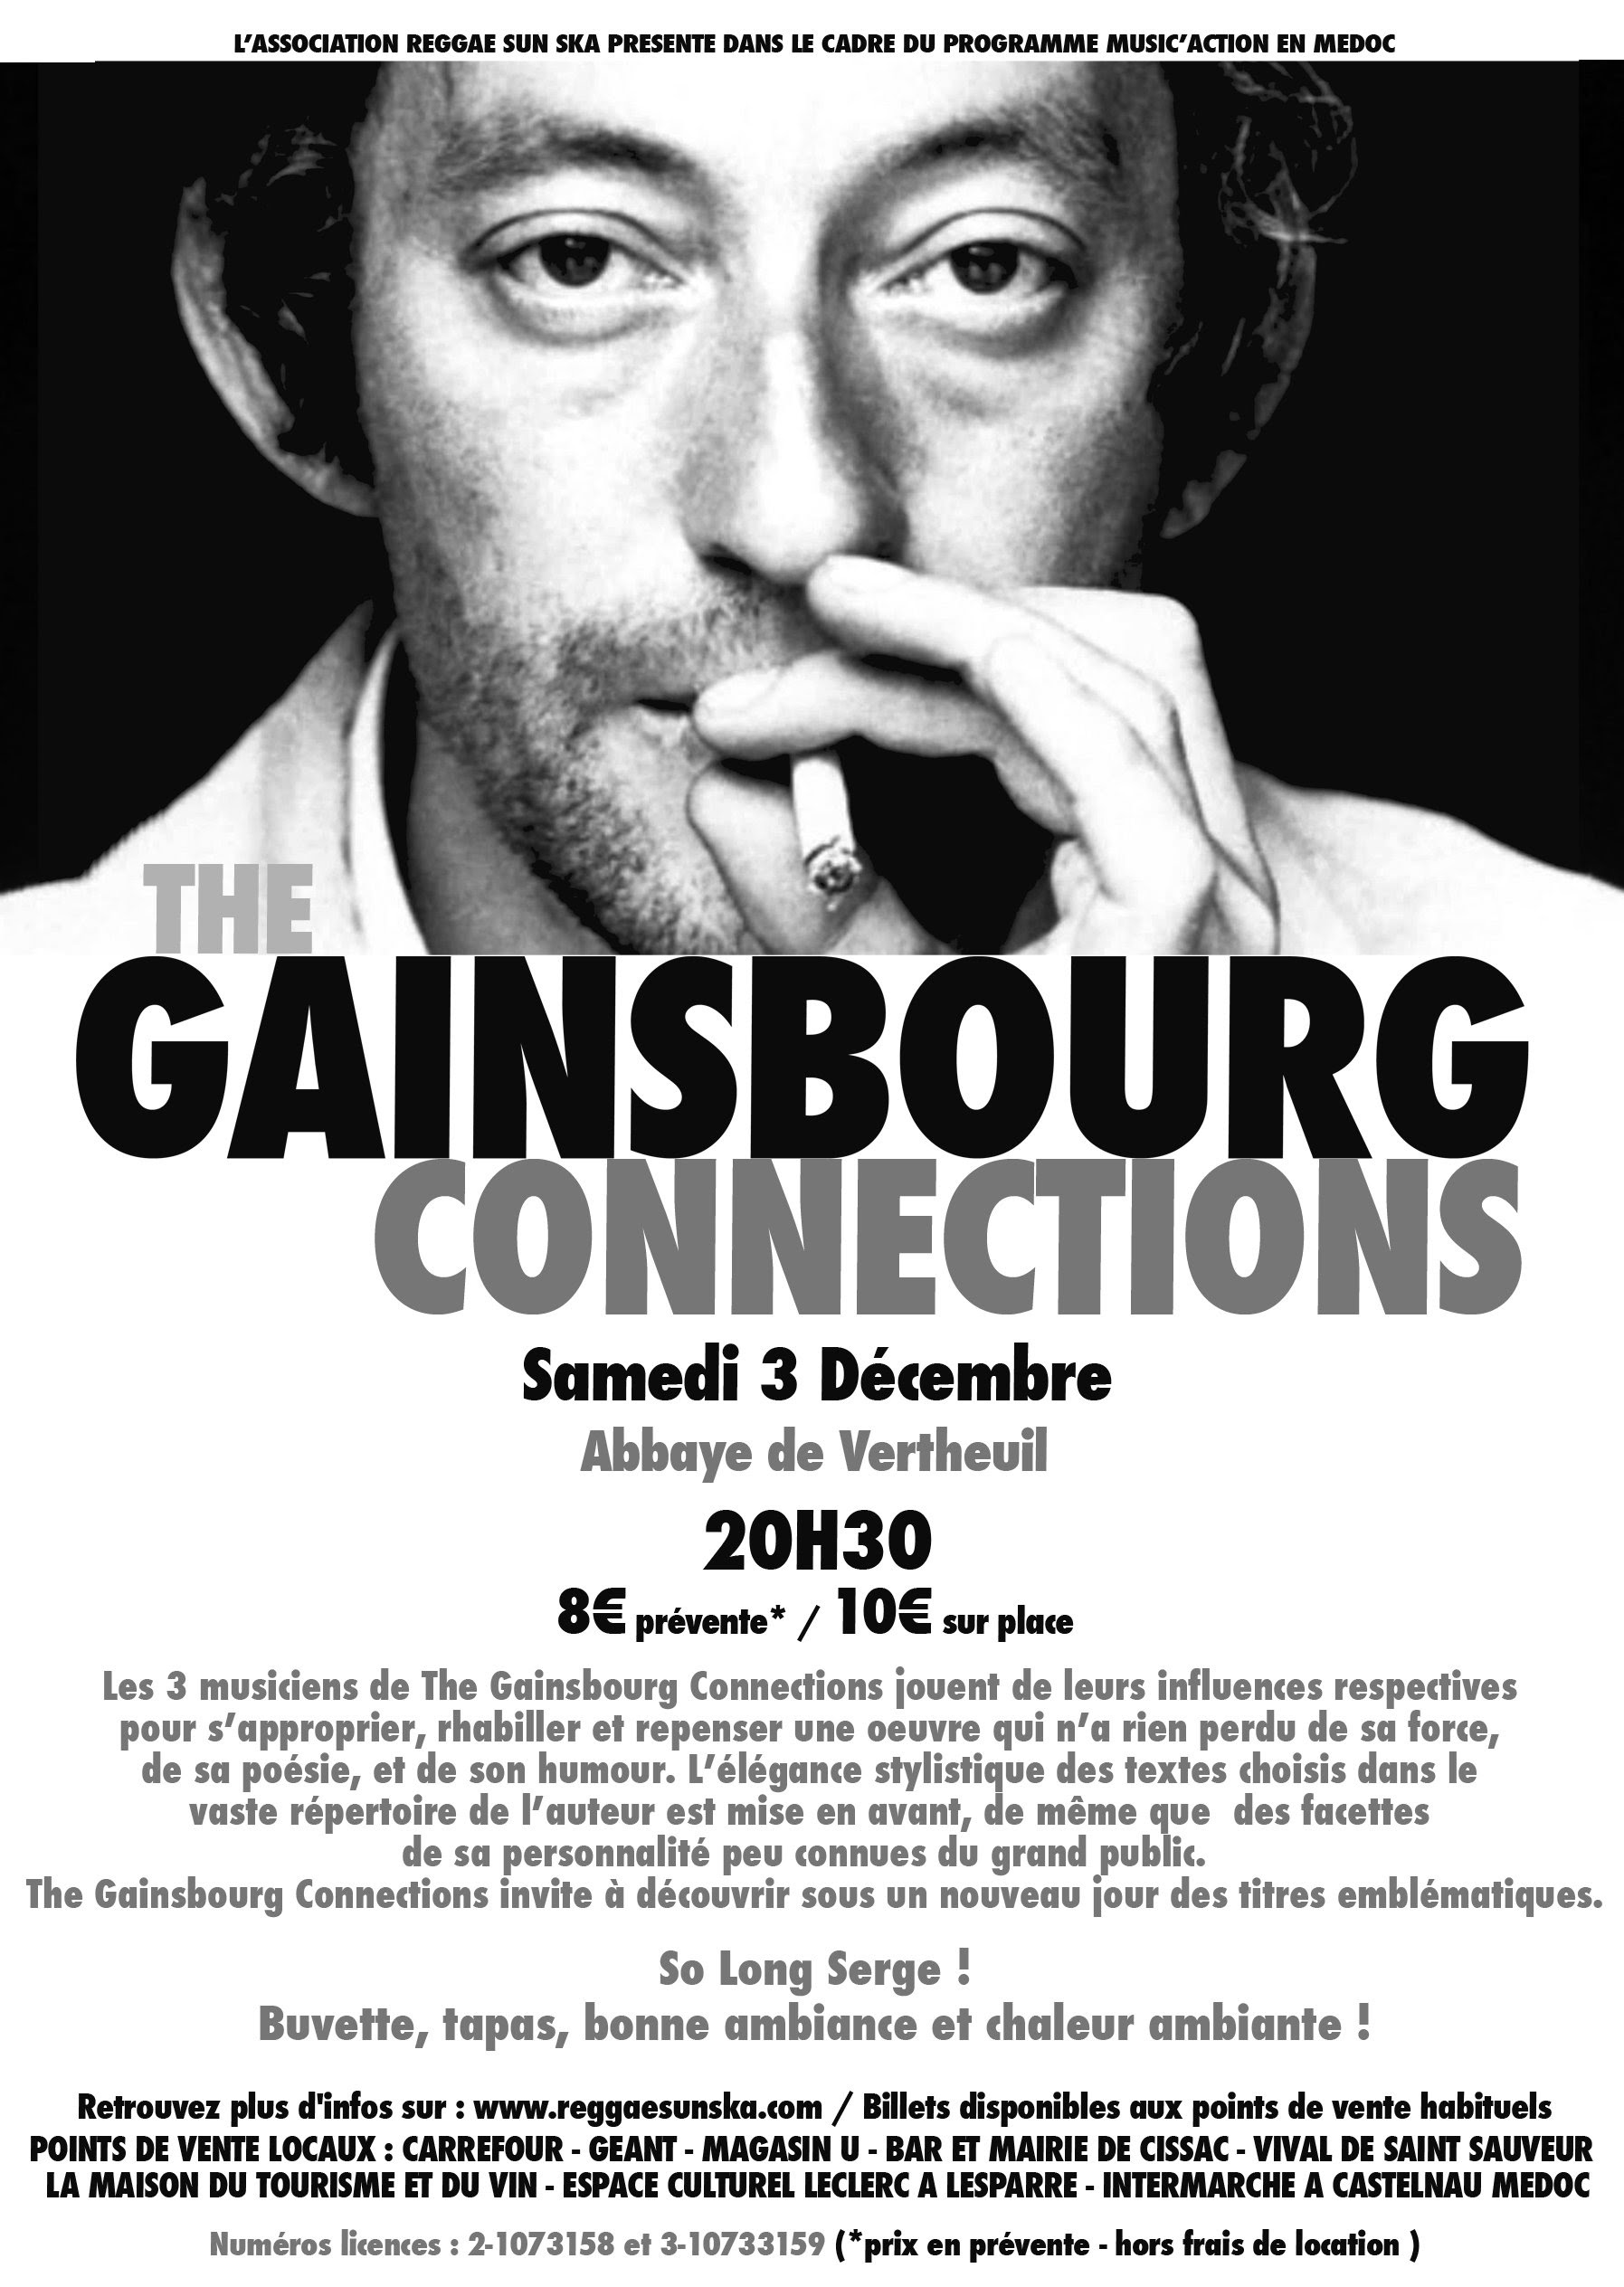 http://www.hebdomedoc.fr/agenda/The-Gainsbourg-Connections-par-Music-Action-en-Medoc_ae422888.html